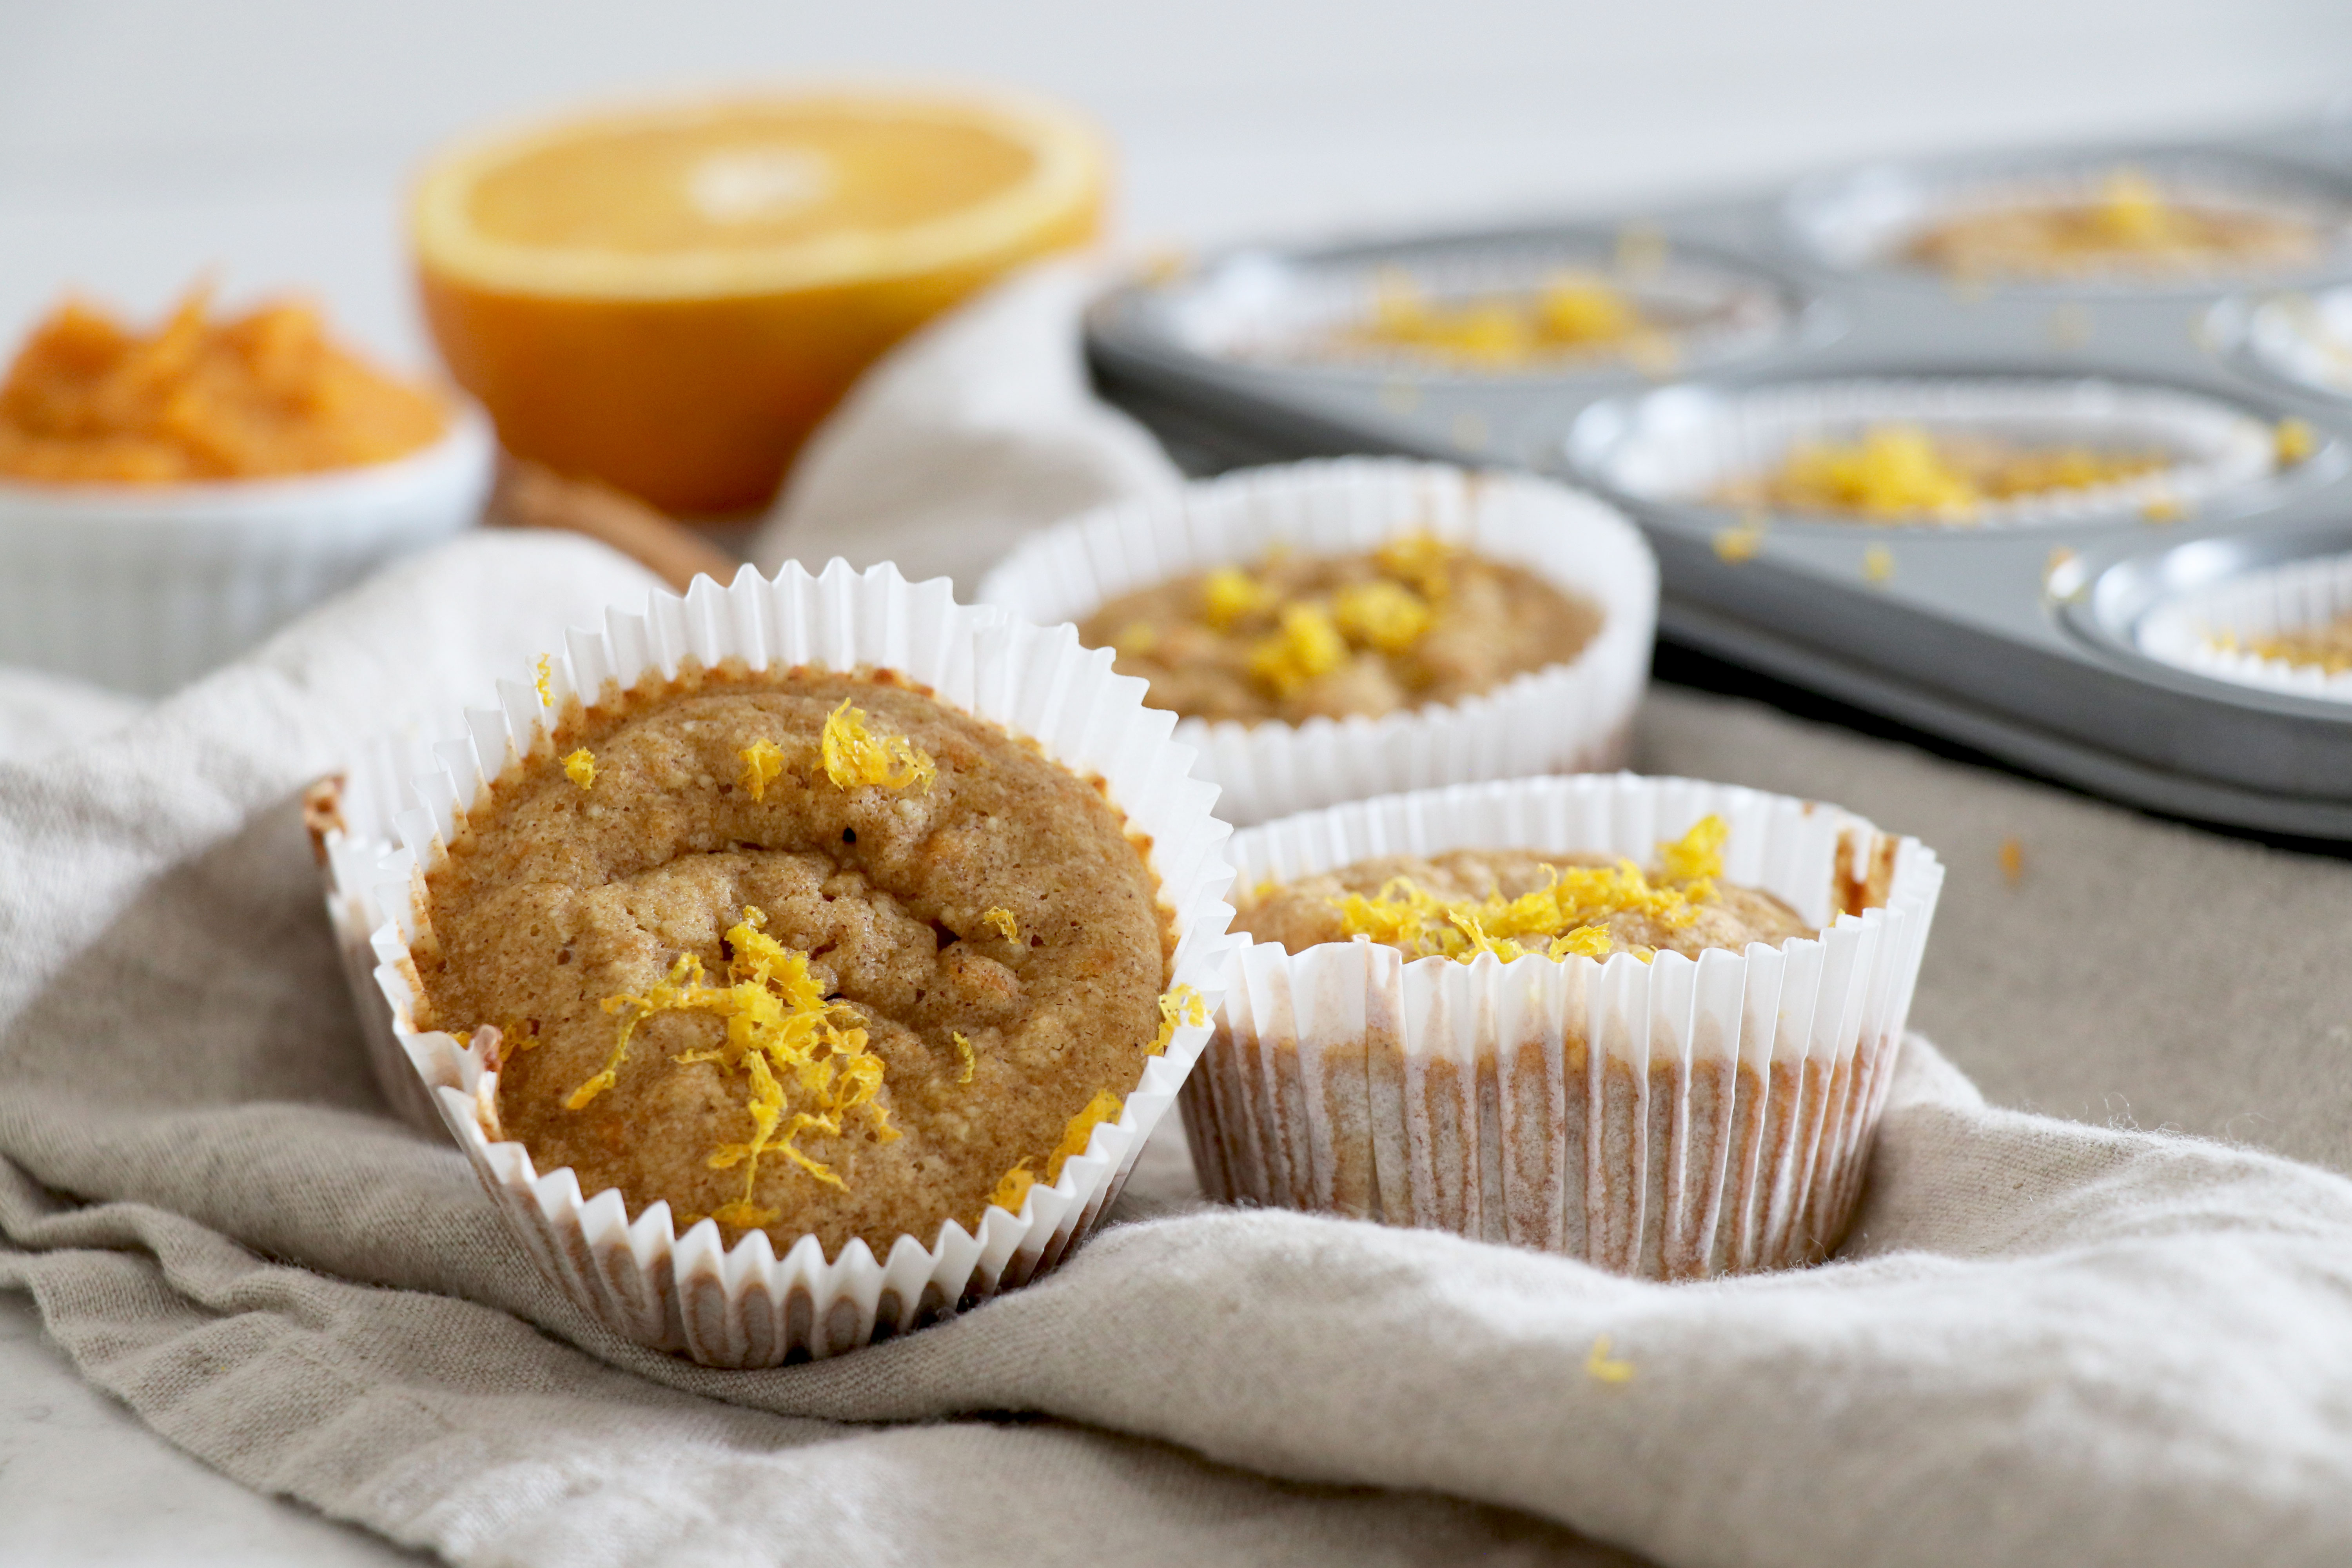 Orange cinnamon muffins with muffin tin behind and sliced orange.